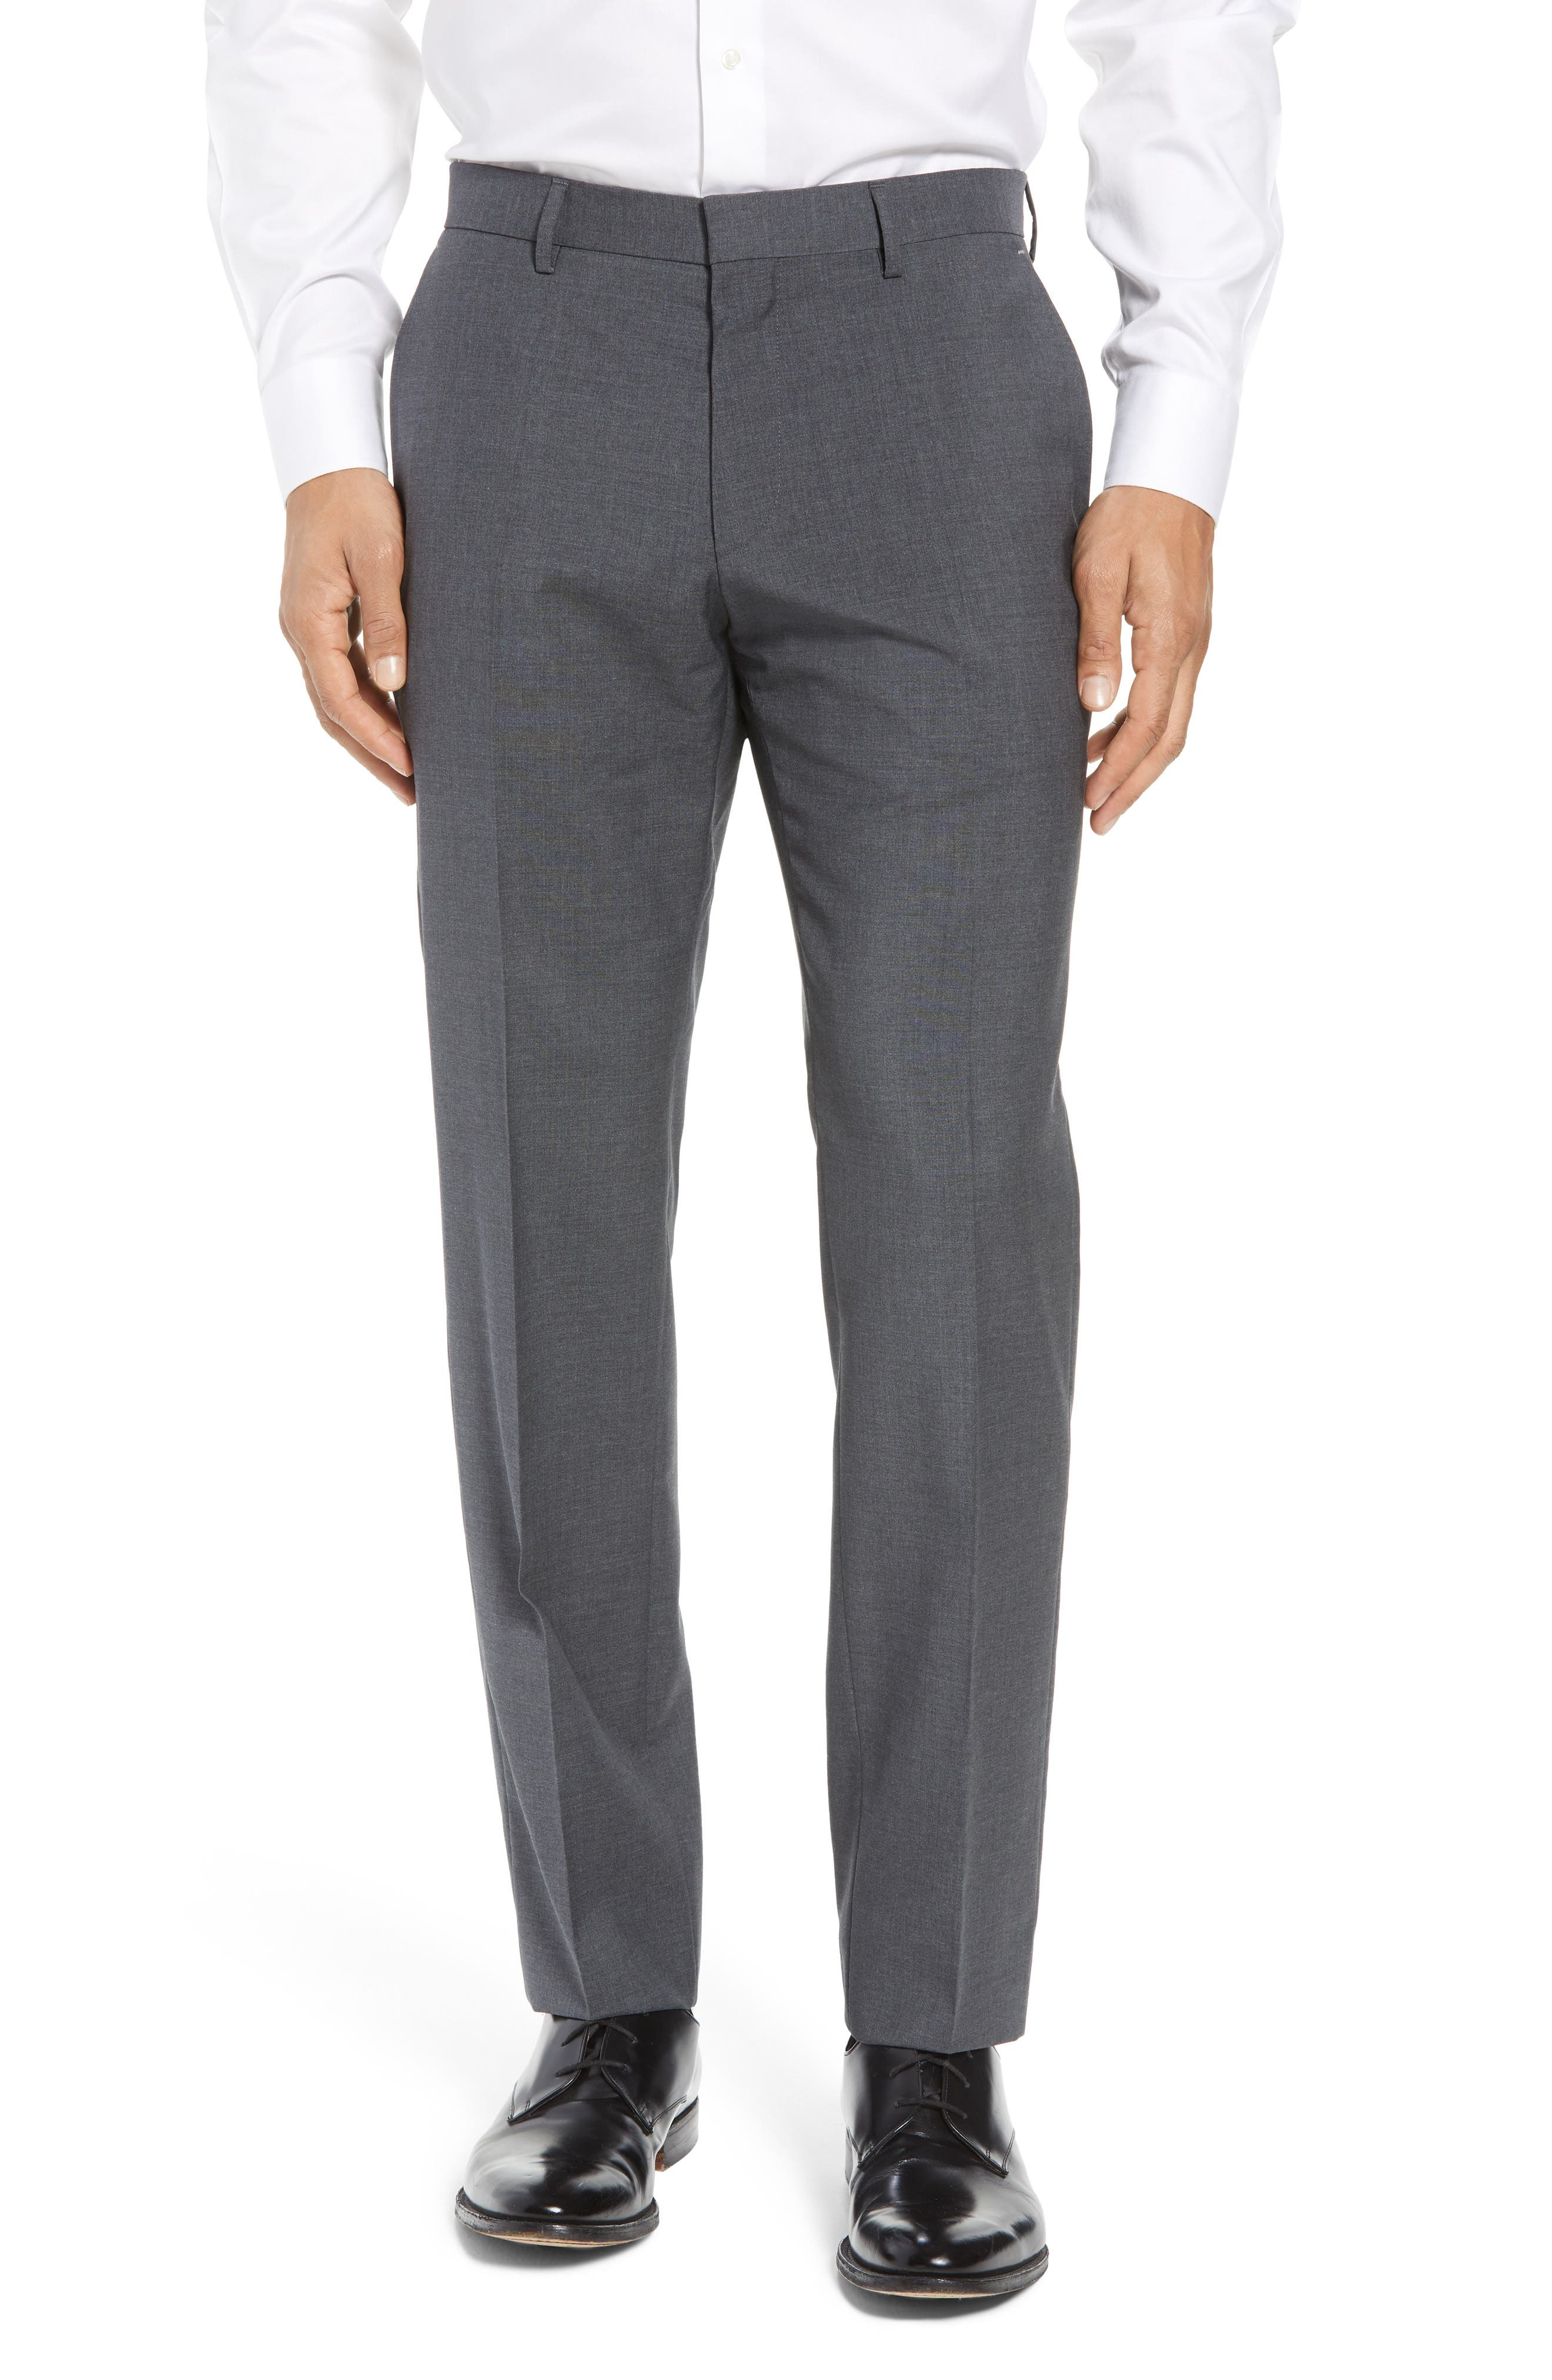 BOSS, Genesis Flat Front Solid Wool Trousers, Main thumbnail 1, color, CHARCOAL